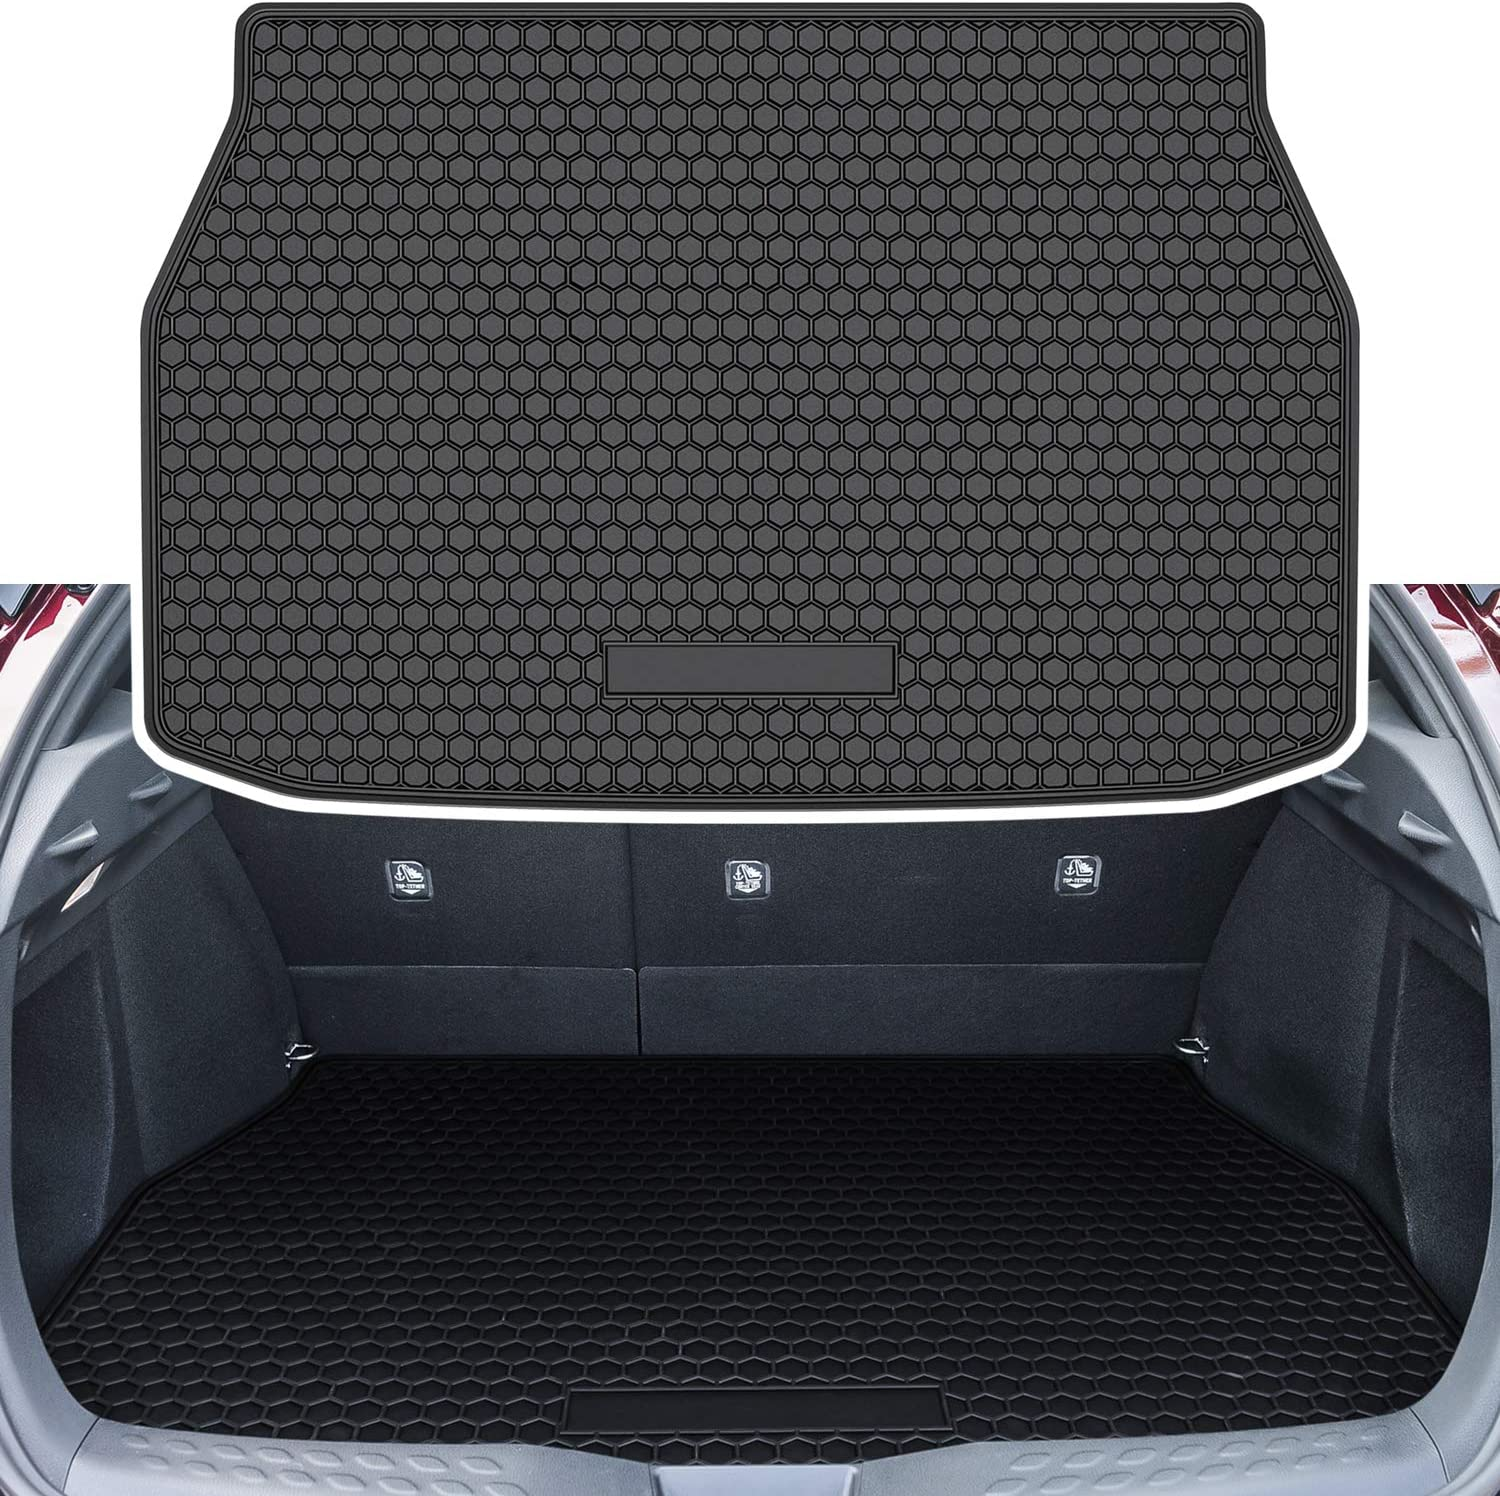 For Peugeot 308 Hatchback 2008/>2013 Black Heavy Duty Quality Boot Tray Liner Mat